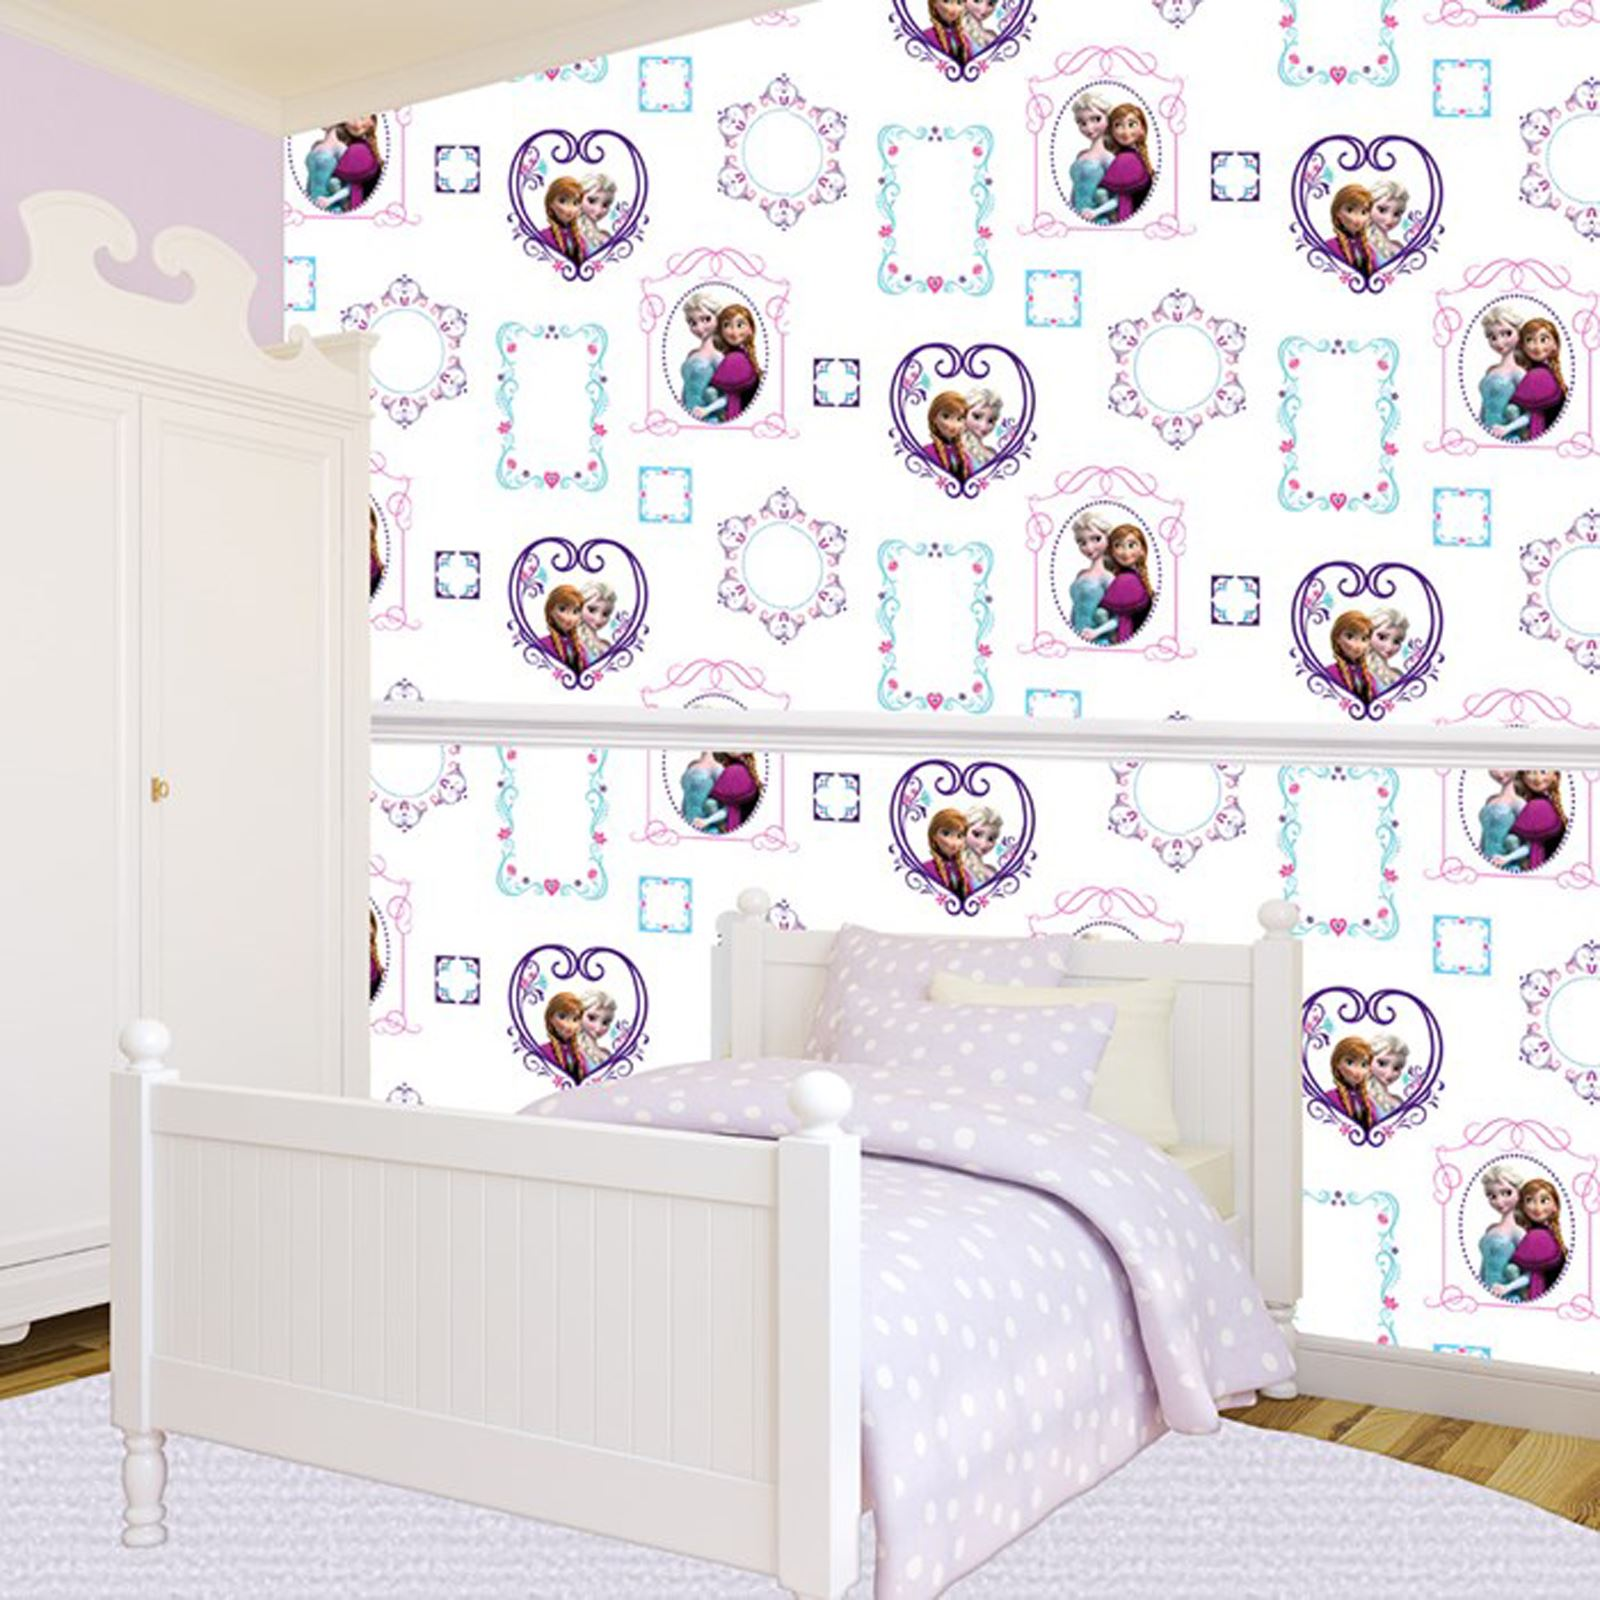 Disney frozen wallpaper borders and wall stickers wall dcor ebay teraionfo